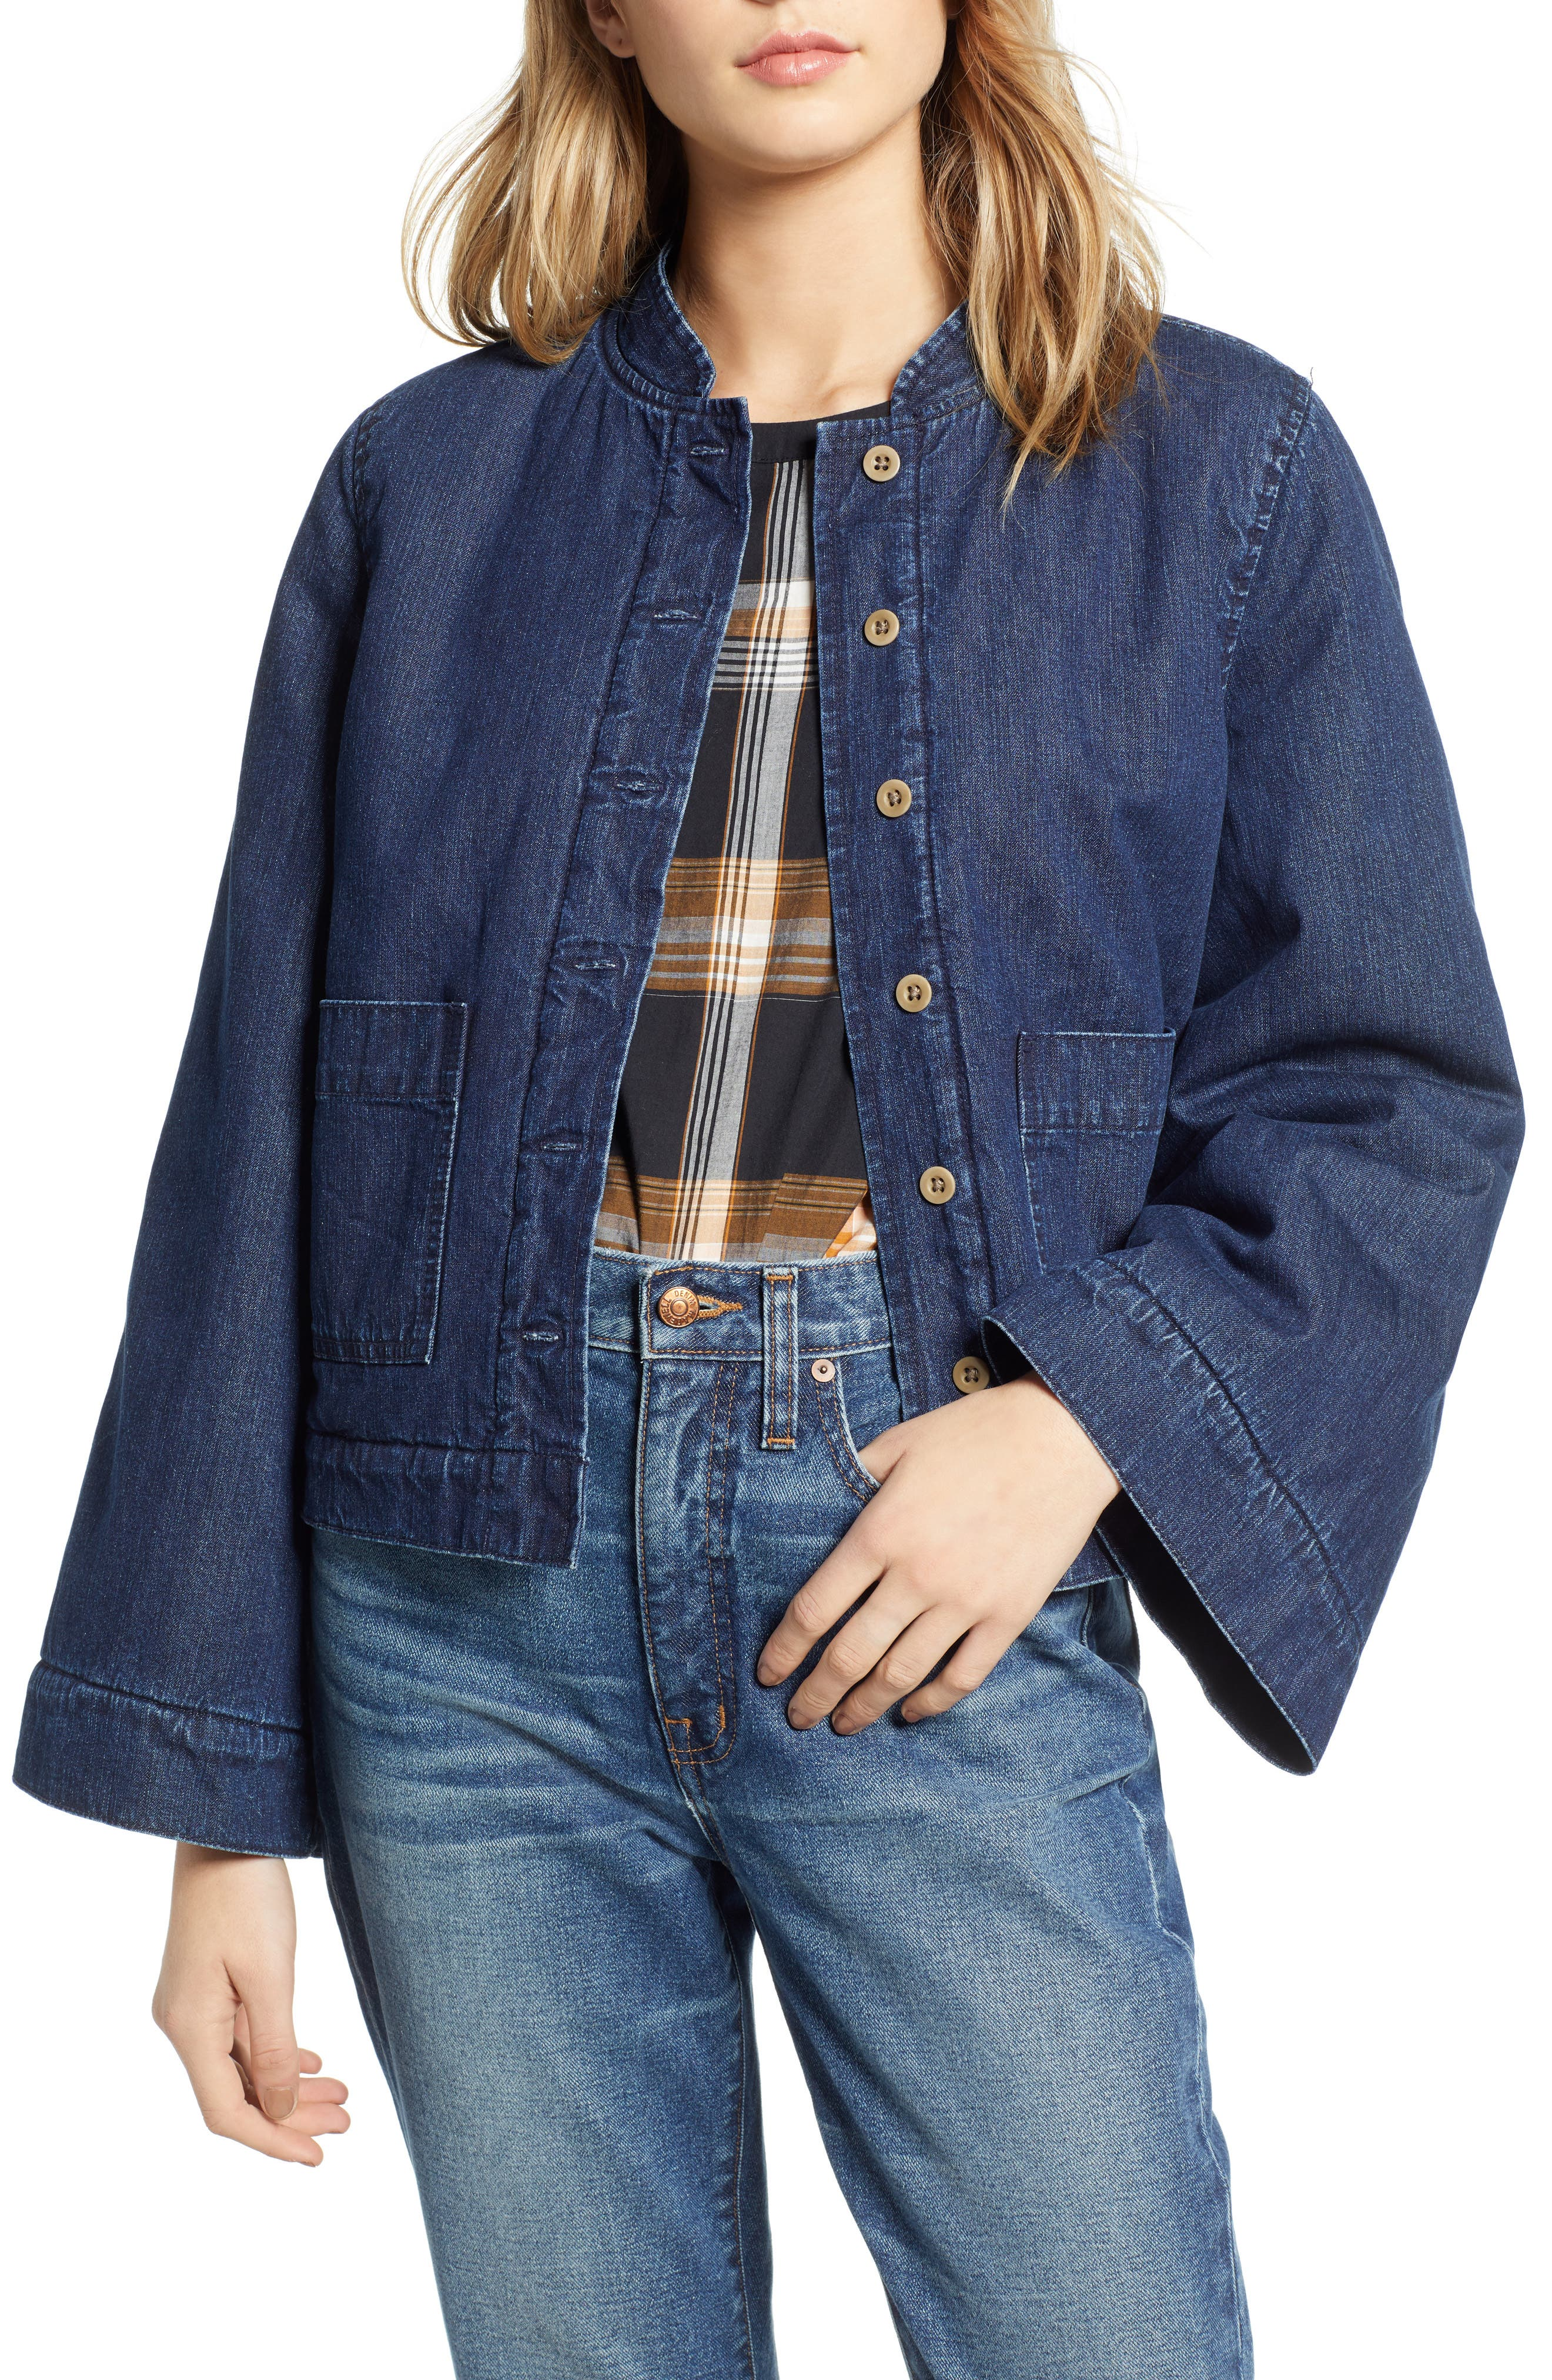 MADEWELL Reversible Fleece Jean Jacket, Main, color, 400